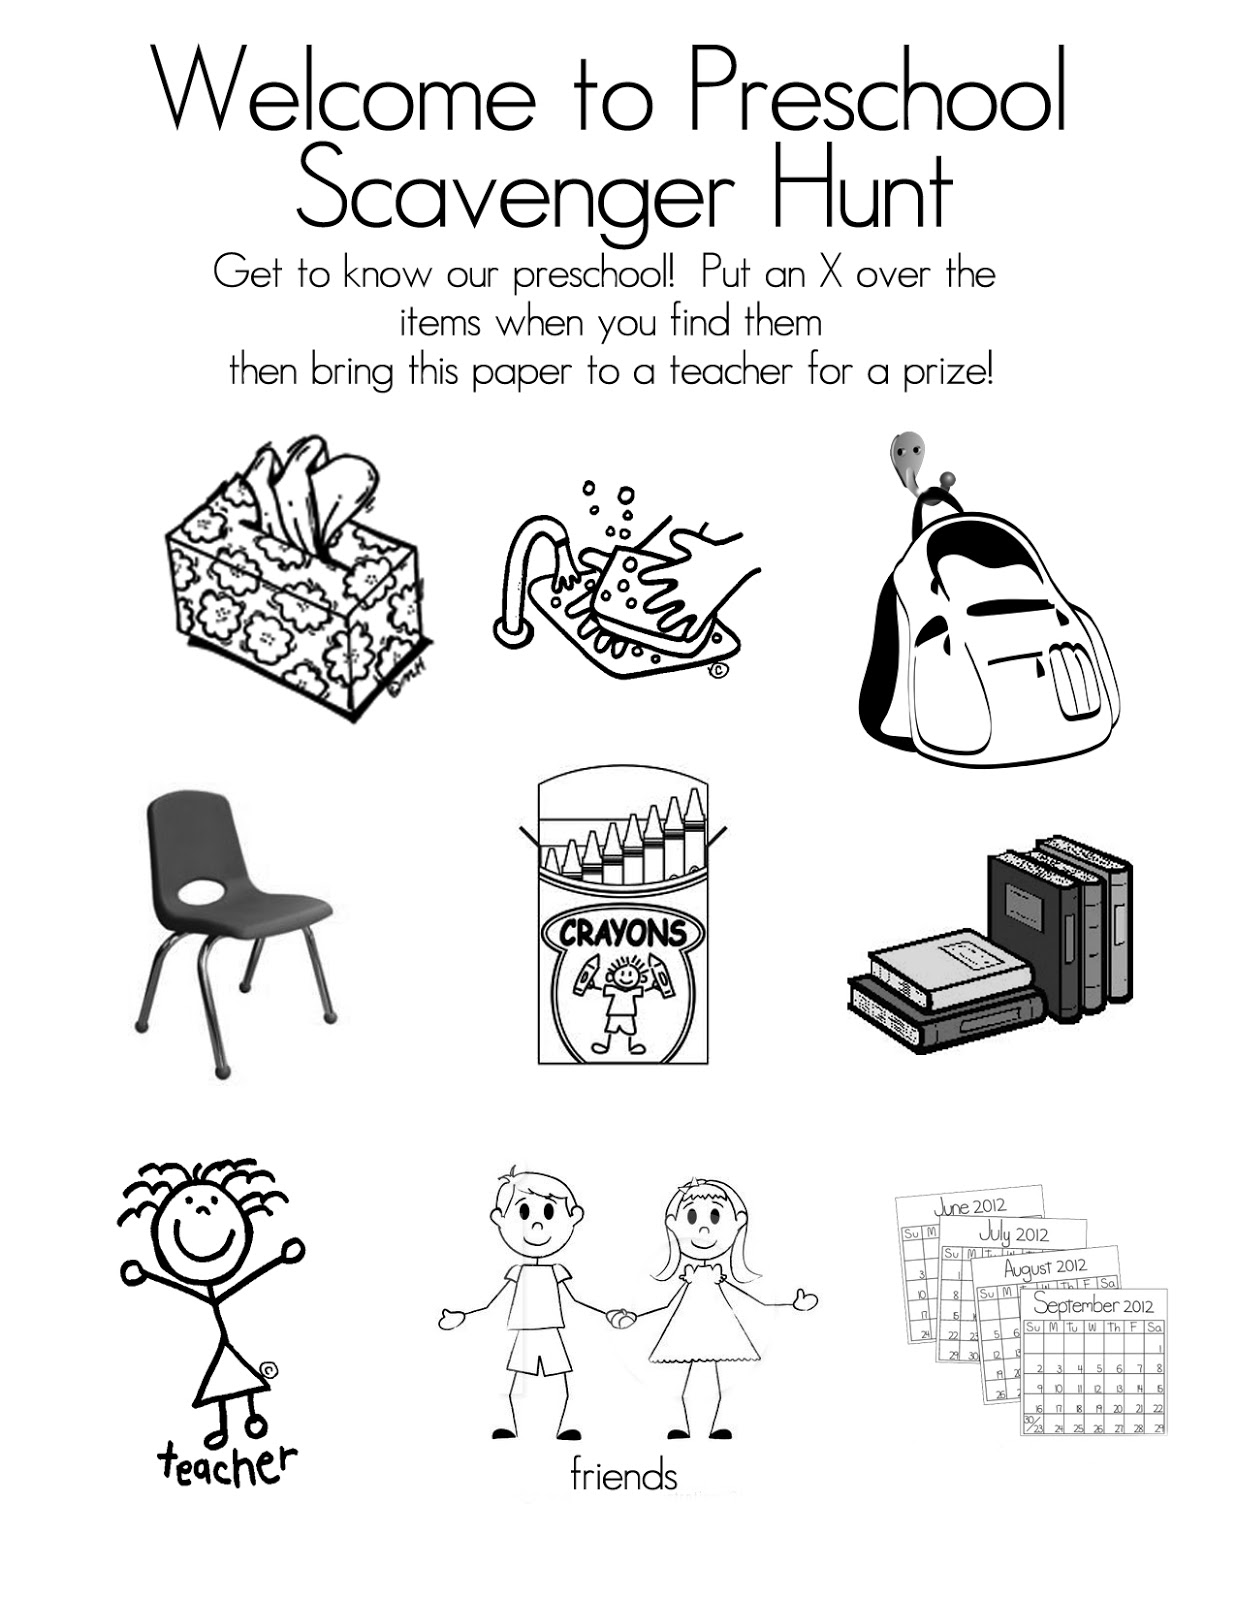 photograph relating to Classroom Scavenger Hunt Printable referred to as Preschool Open up Place No cost Printable Scavenger Hunt - Guidelines